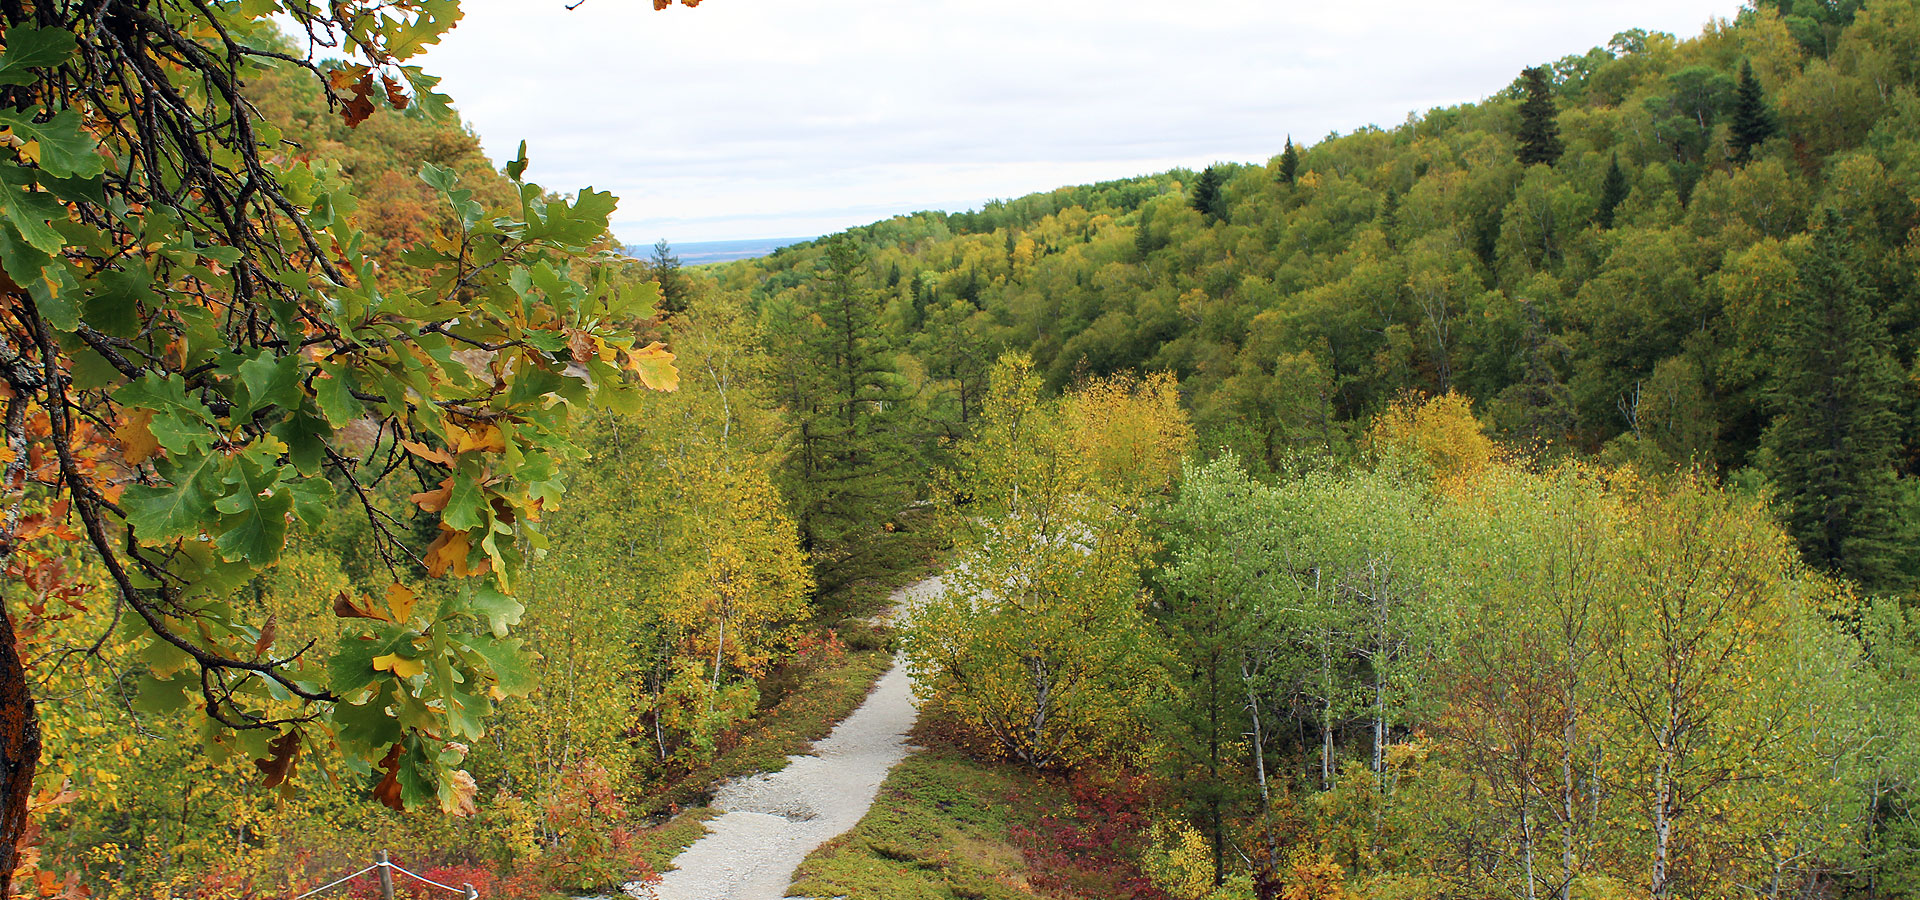 The Escarpment in Riding Mountain National Park